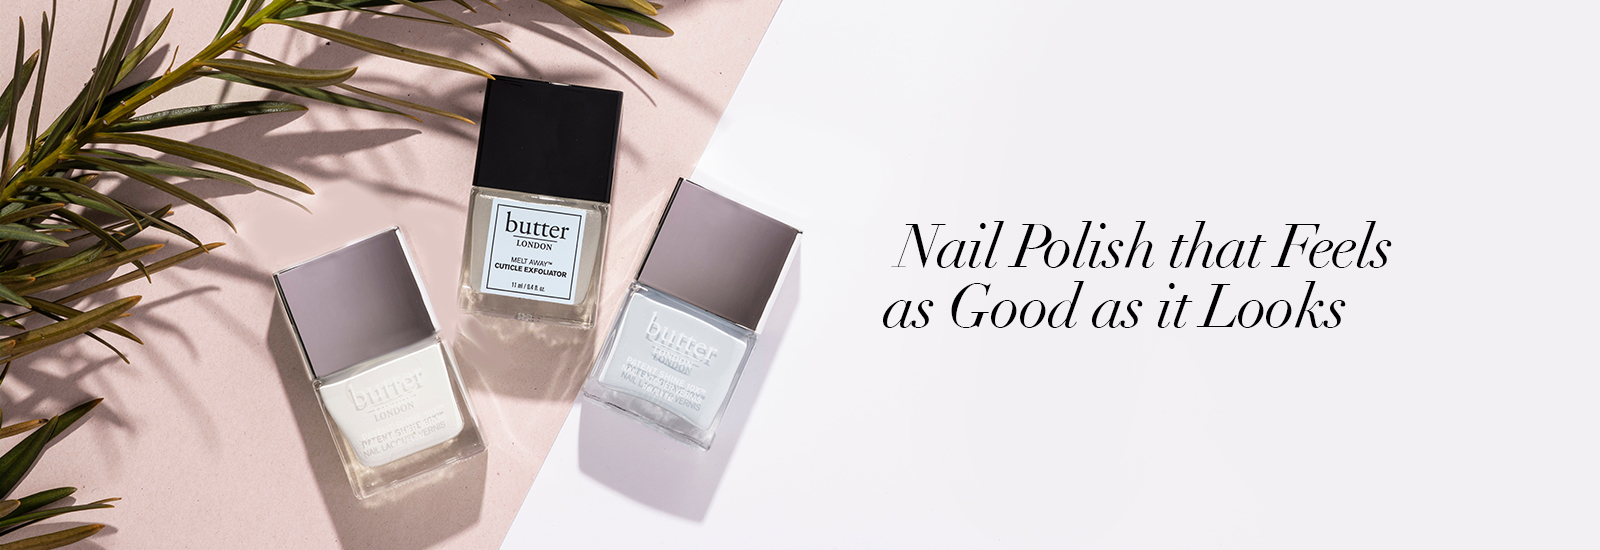 Nail polish that feels as good as it looks